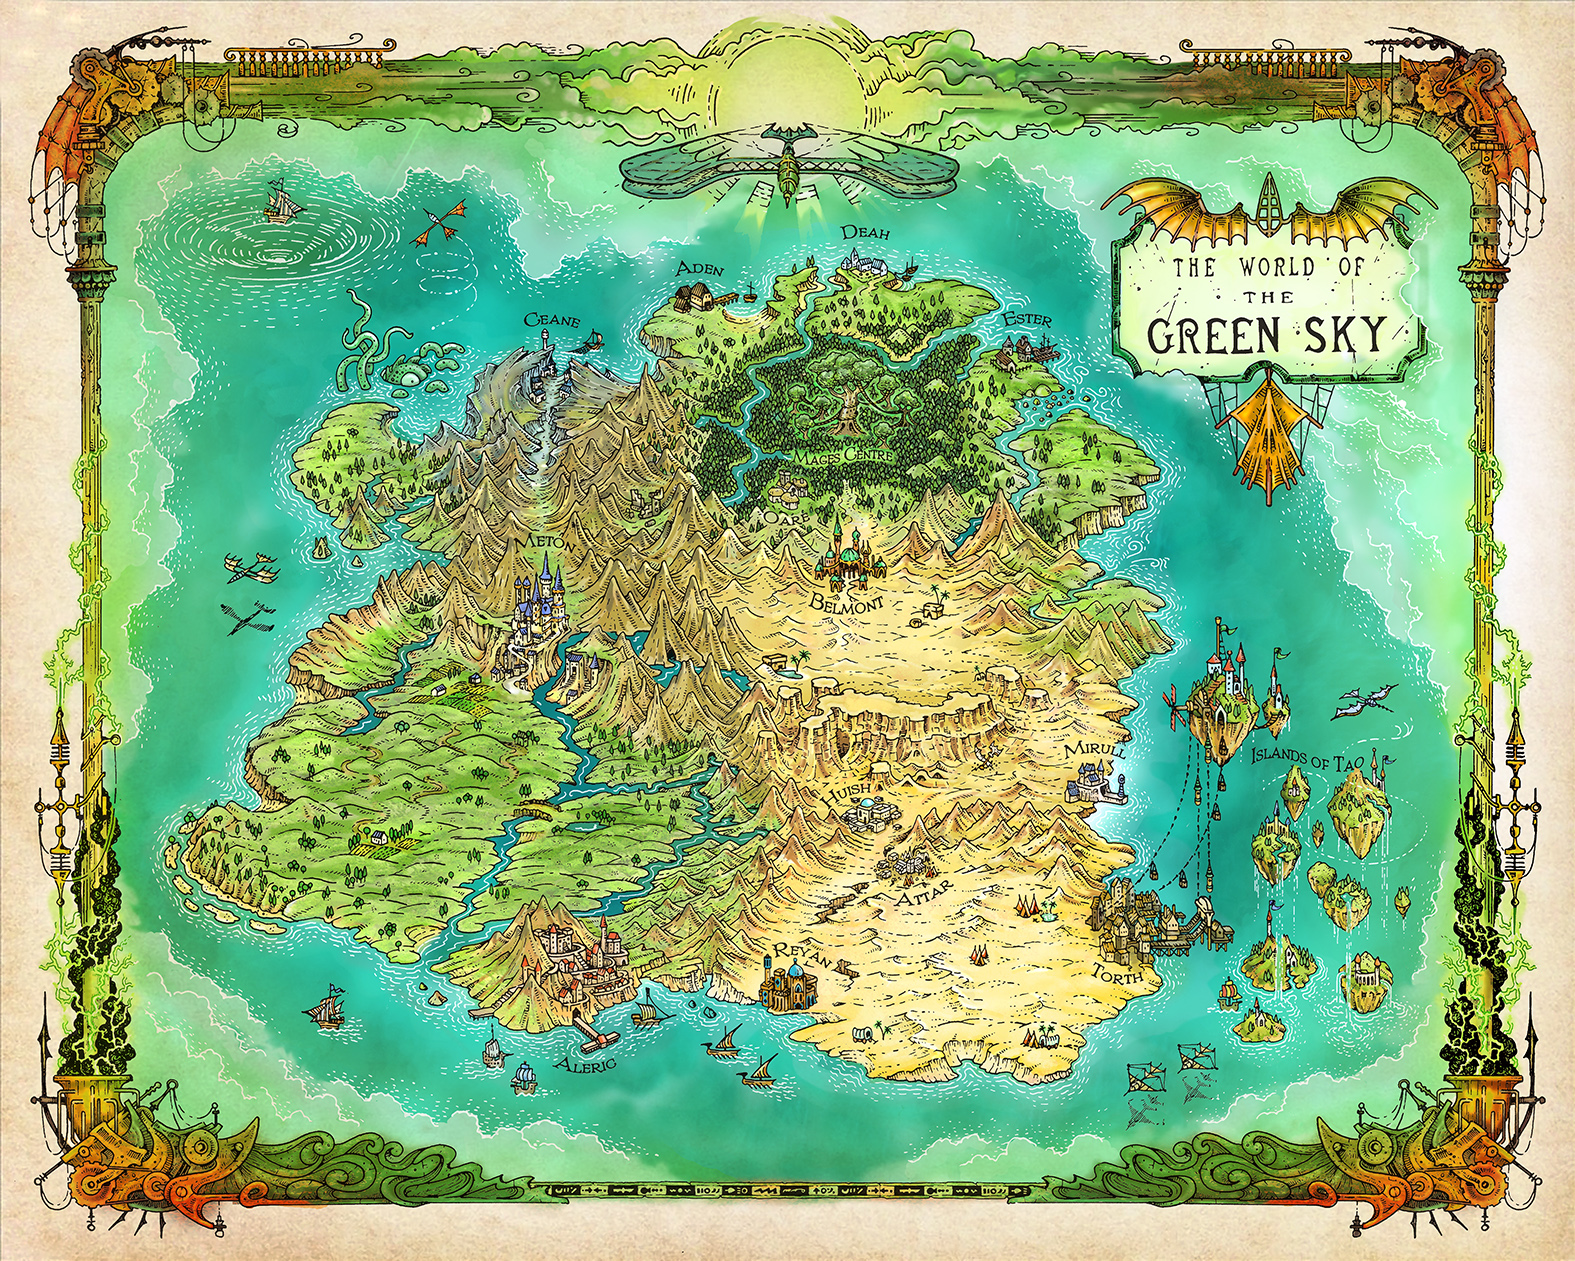 Colour map of the Greensky Fantasy world